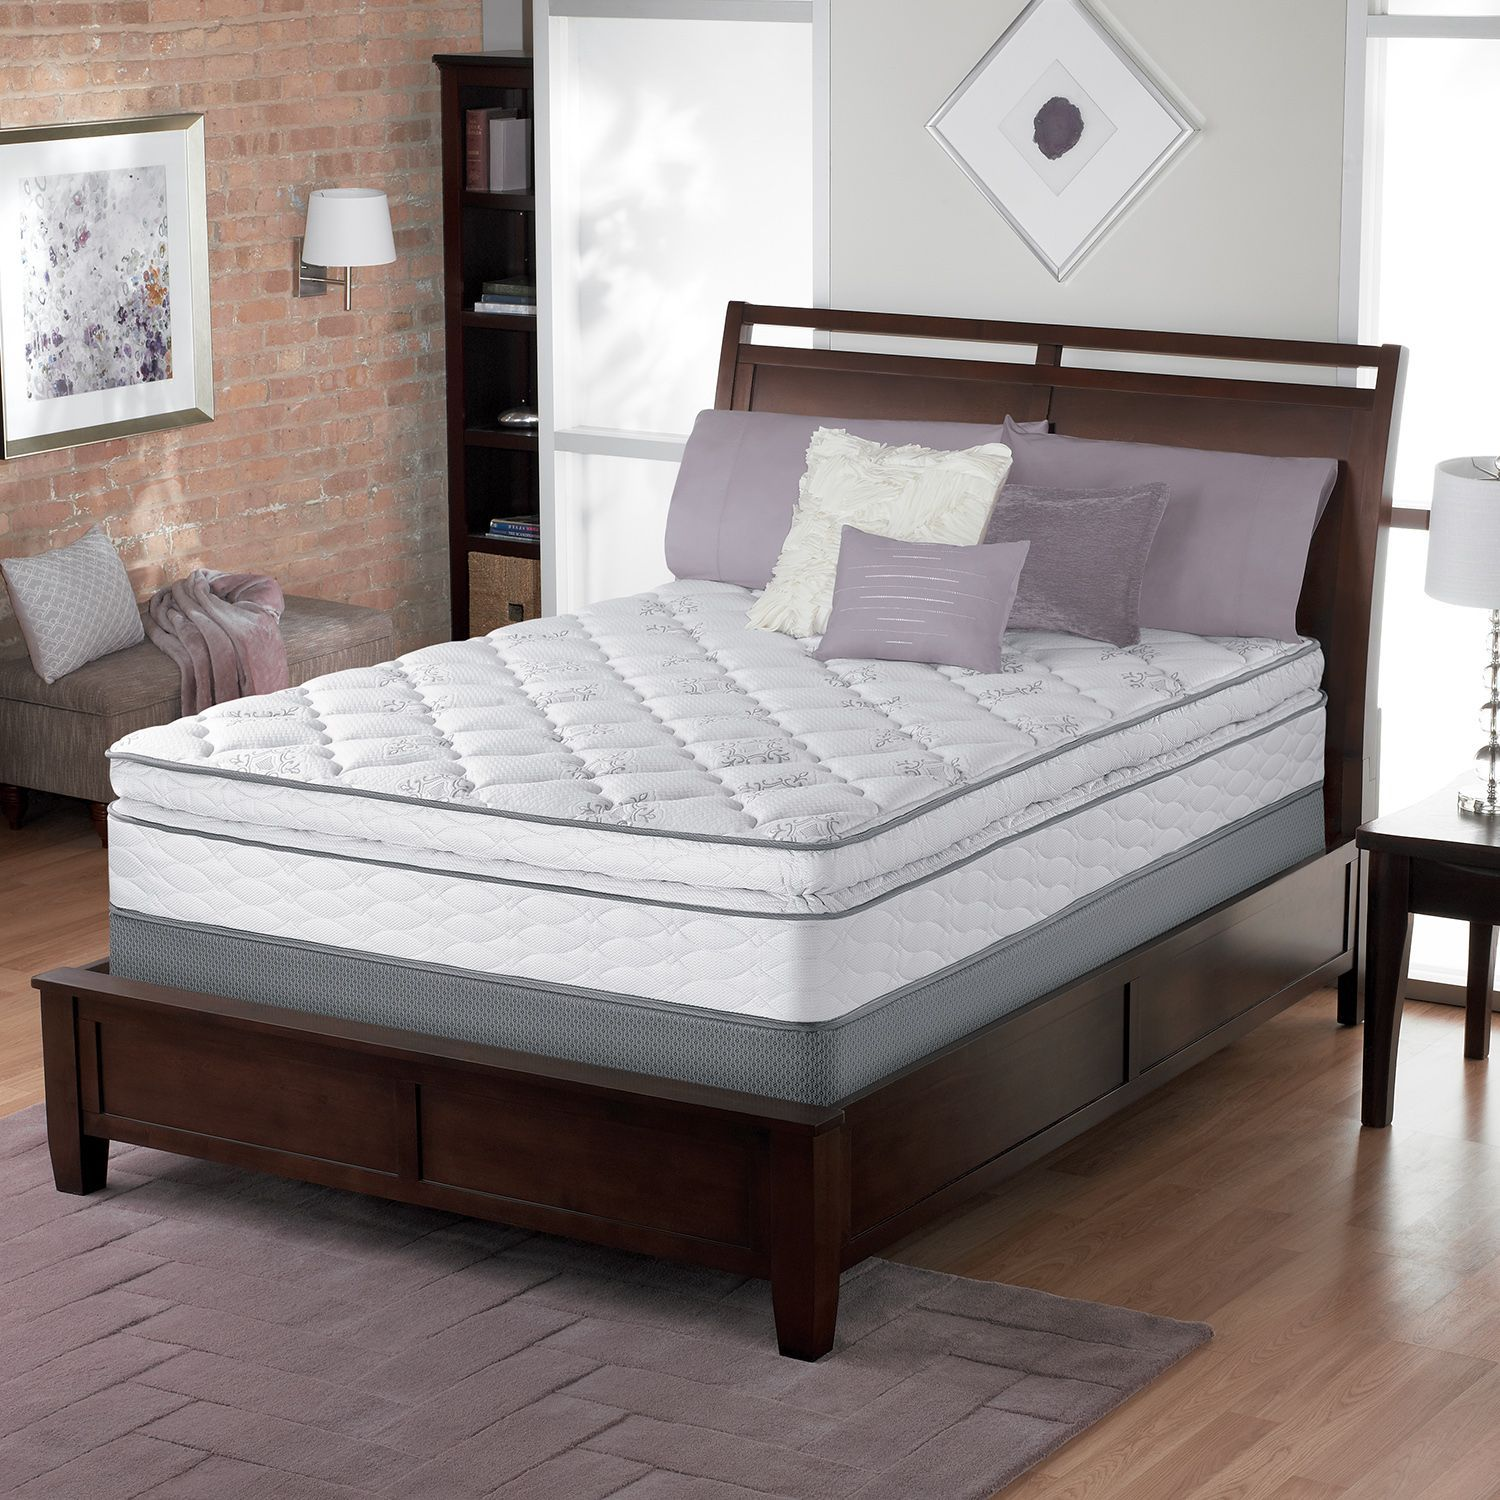 collections with dresser sets mattress nightstand full contemporary furniture packages and bedroom set bed headboard